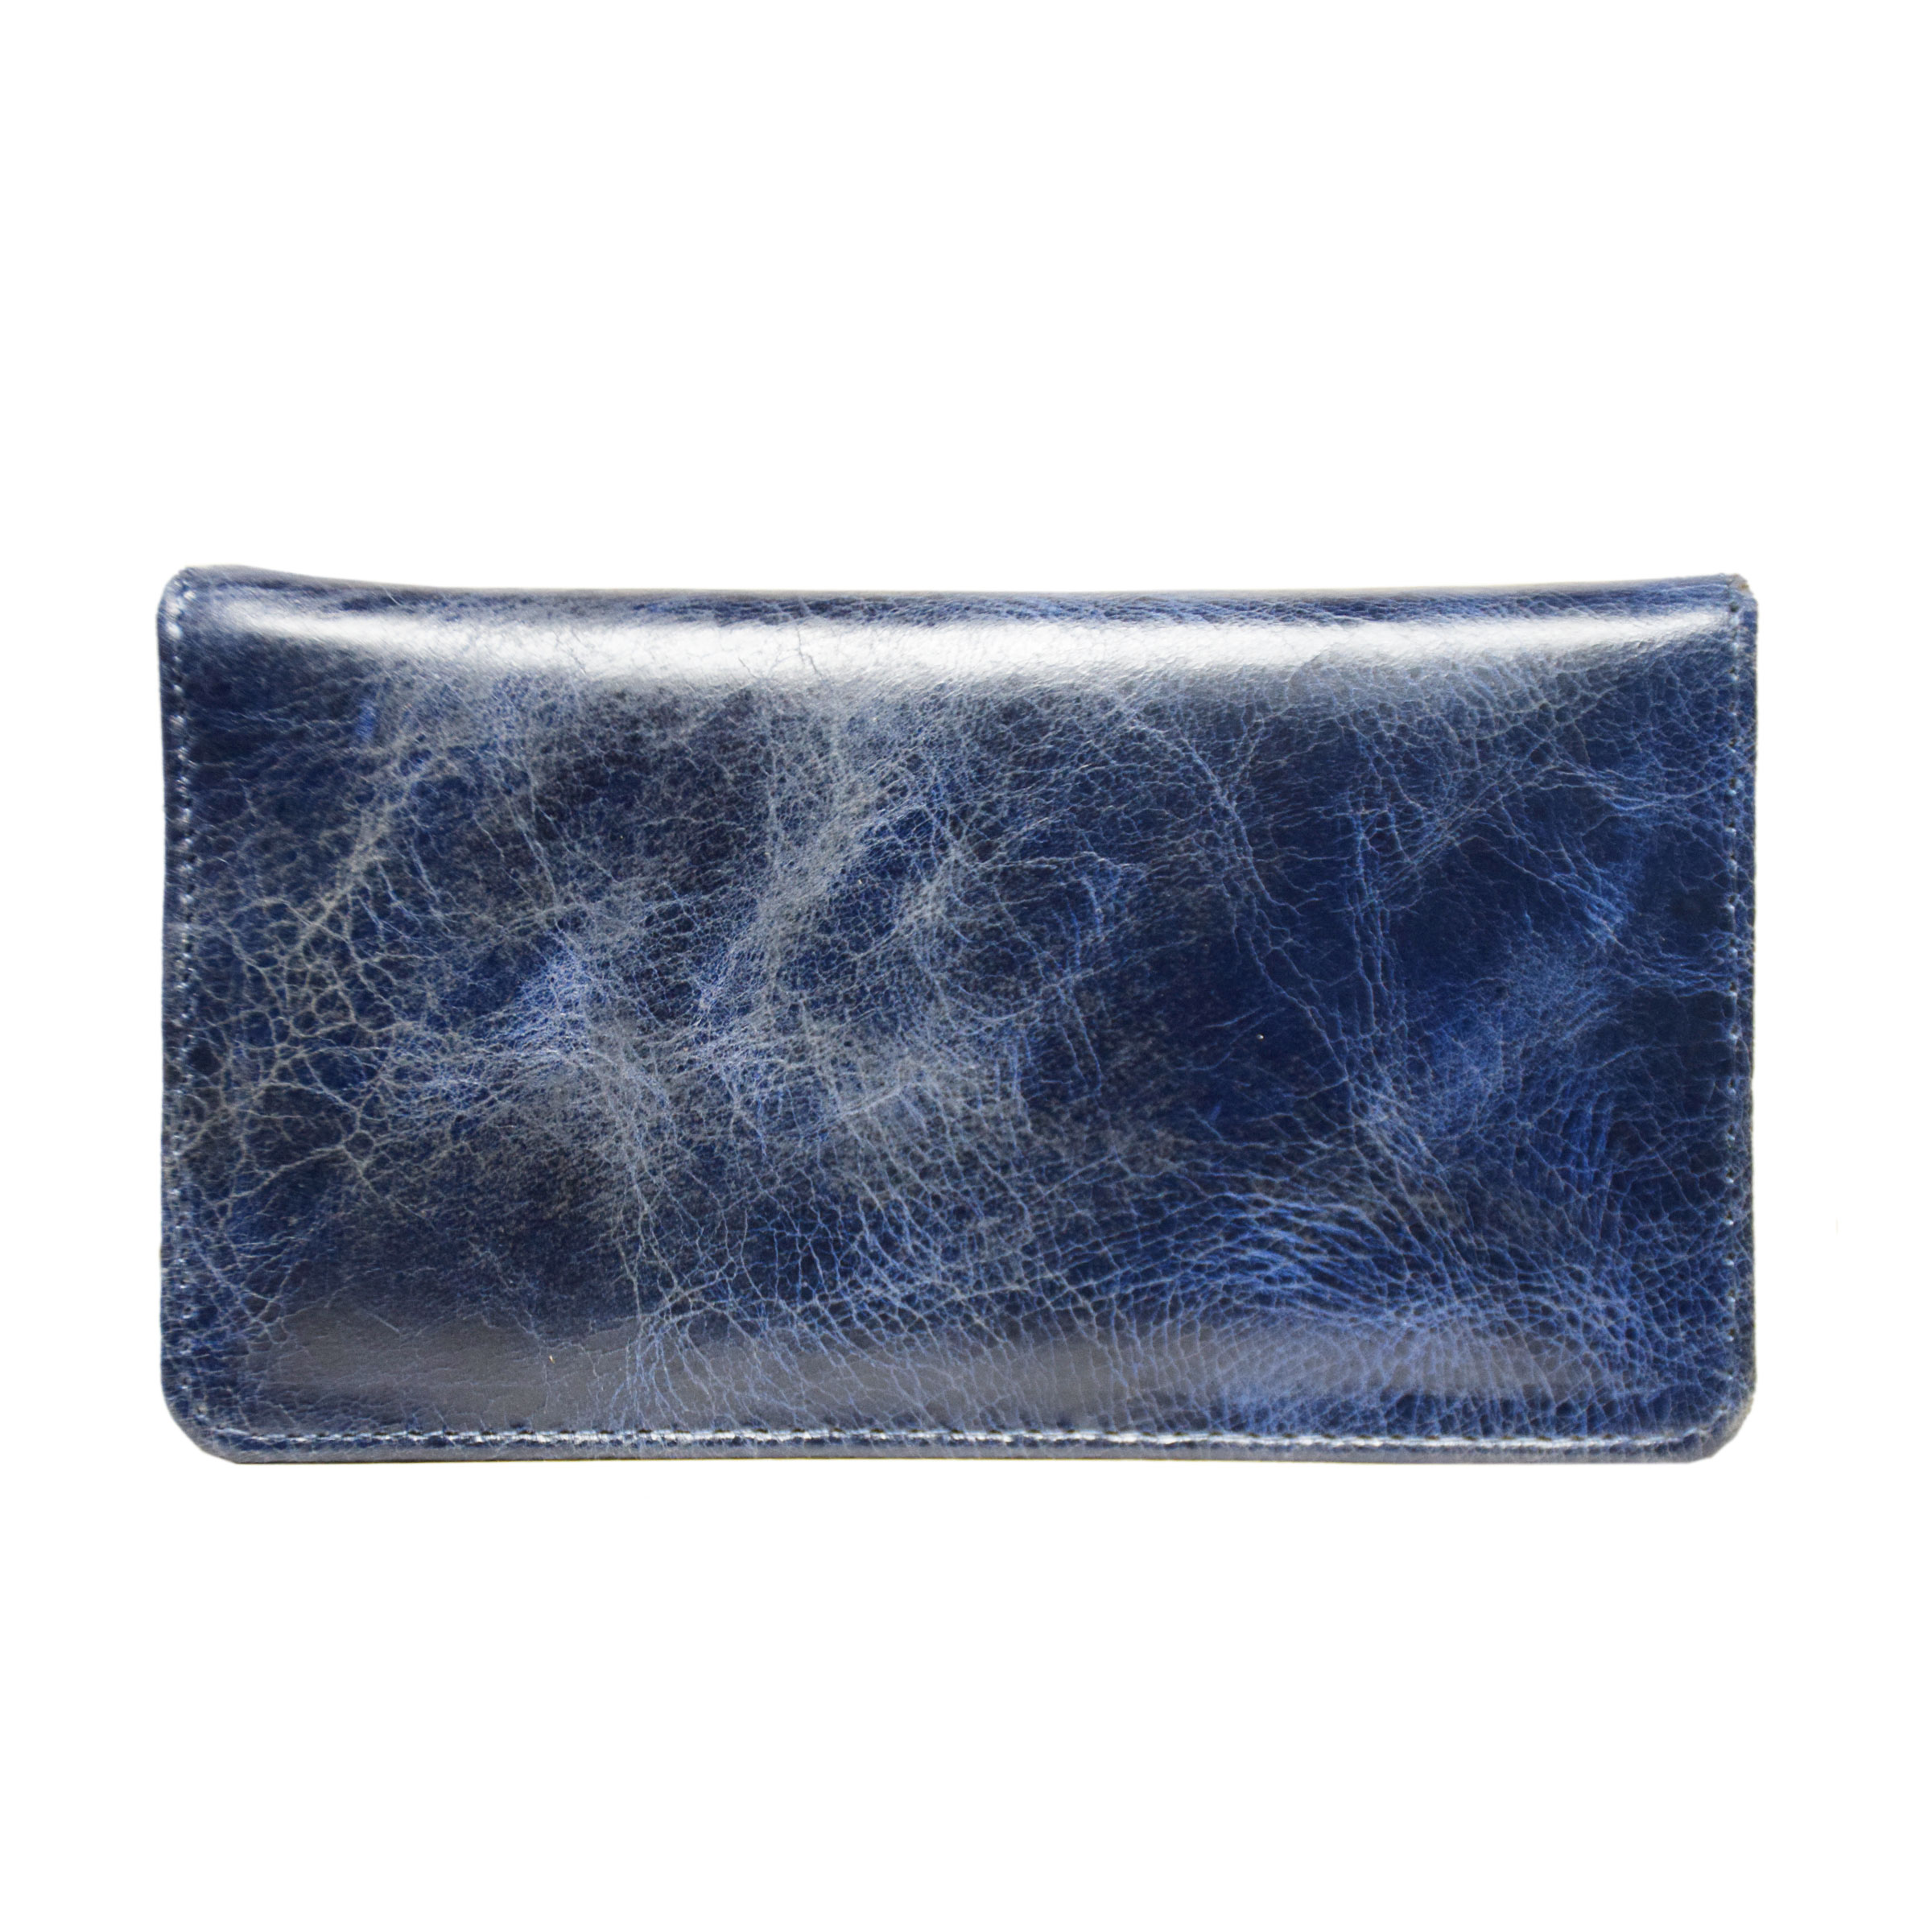 SKIN LADIES CLUTCH WTIH SEVERAL POCKETS